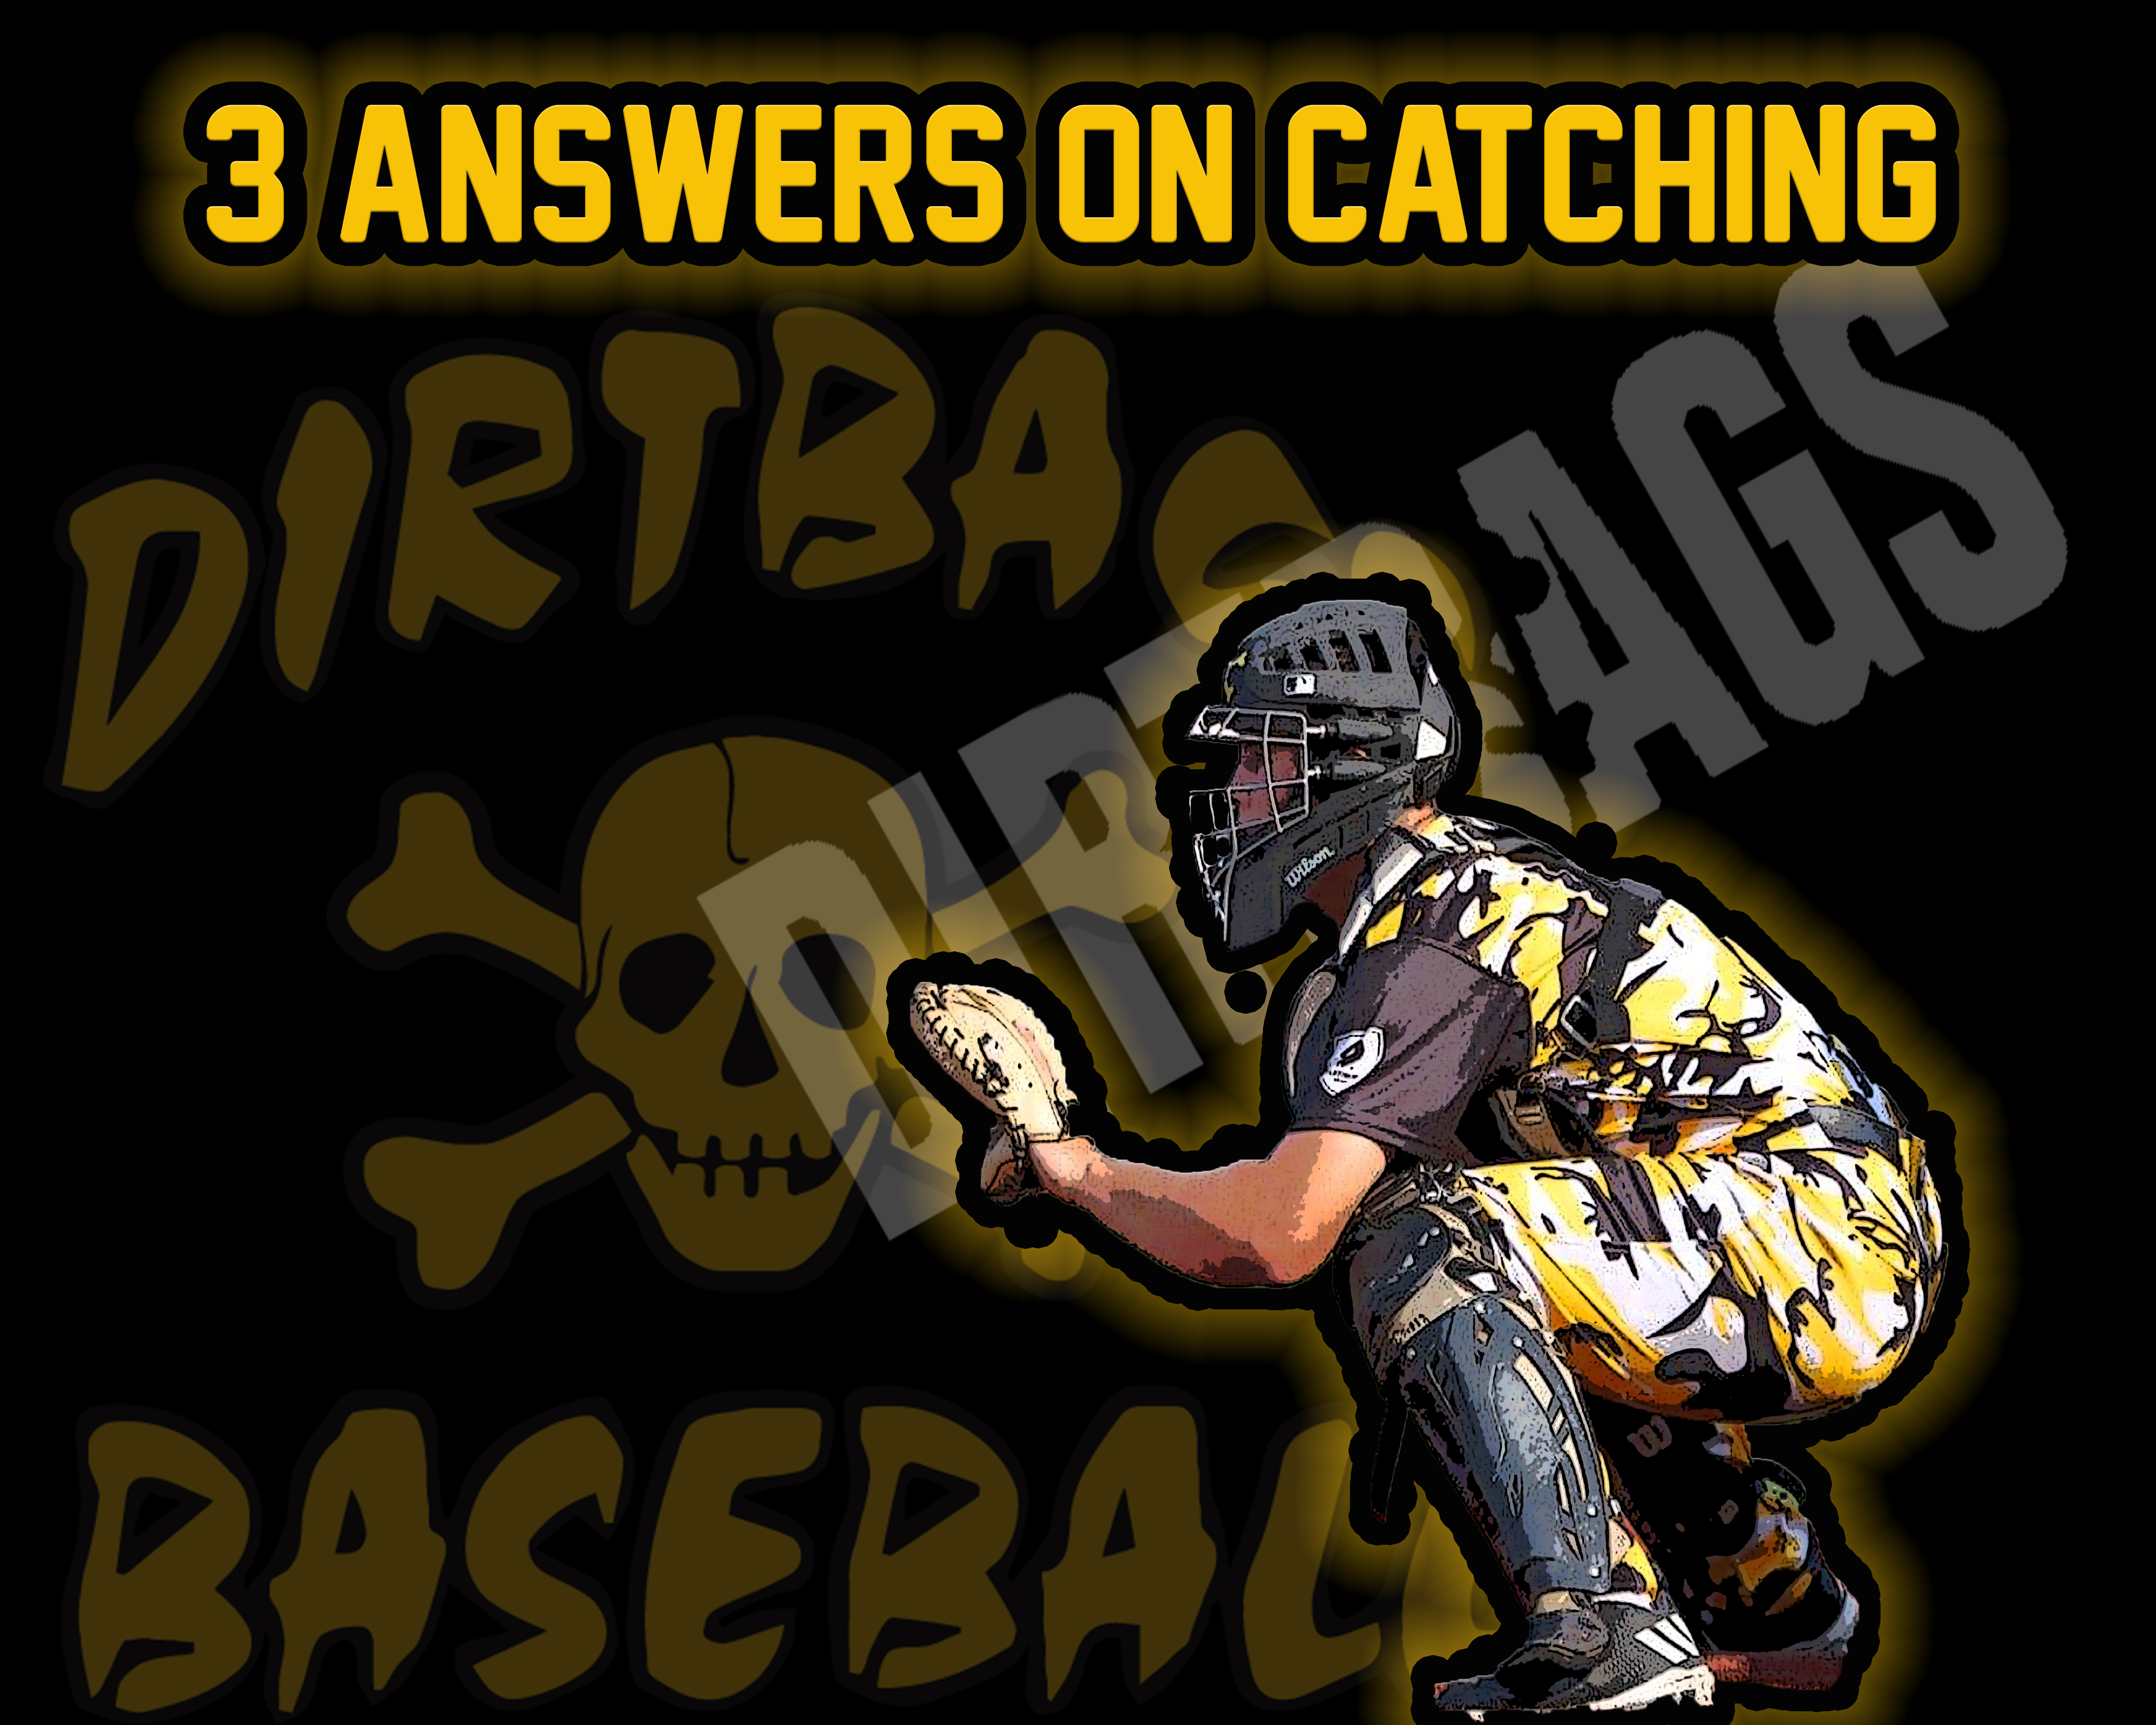 Instructional Friday: 3 Answers On Catching